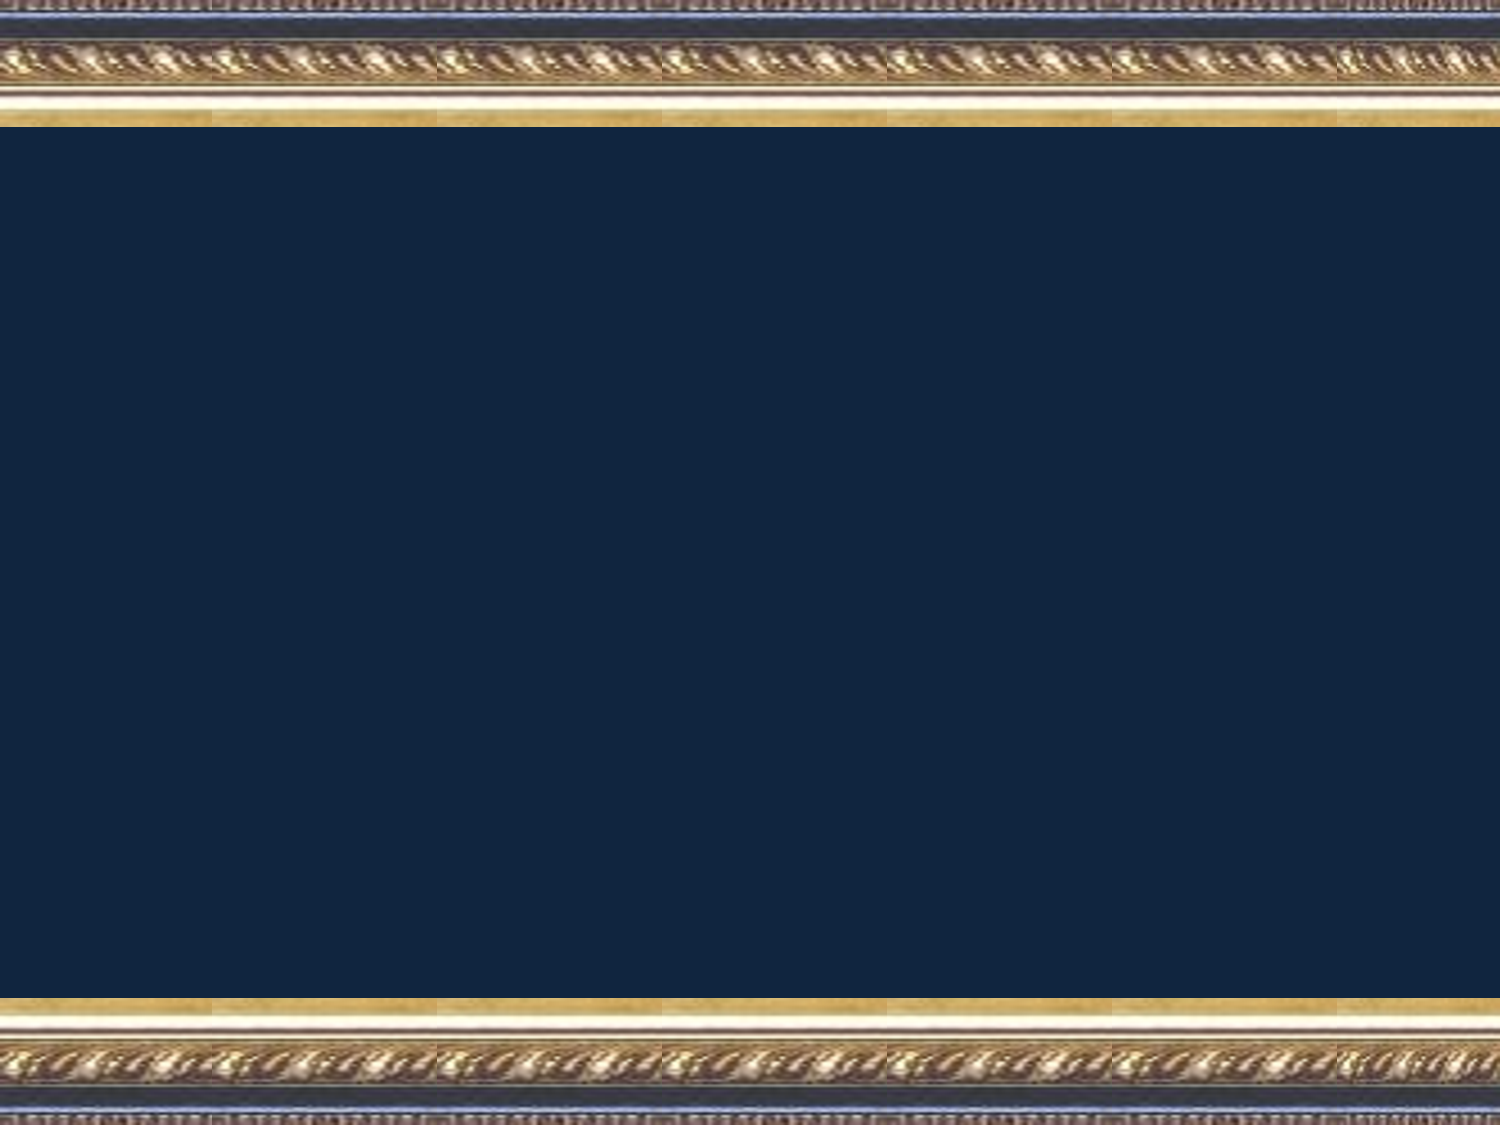 Powerpoint Template   Navy And Gold small Framed Accents by 1500x1125